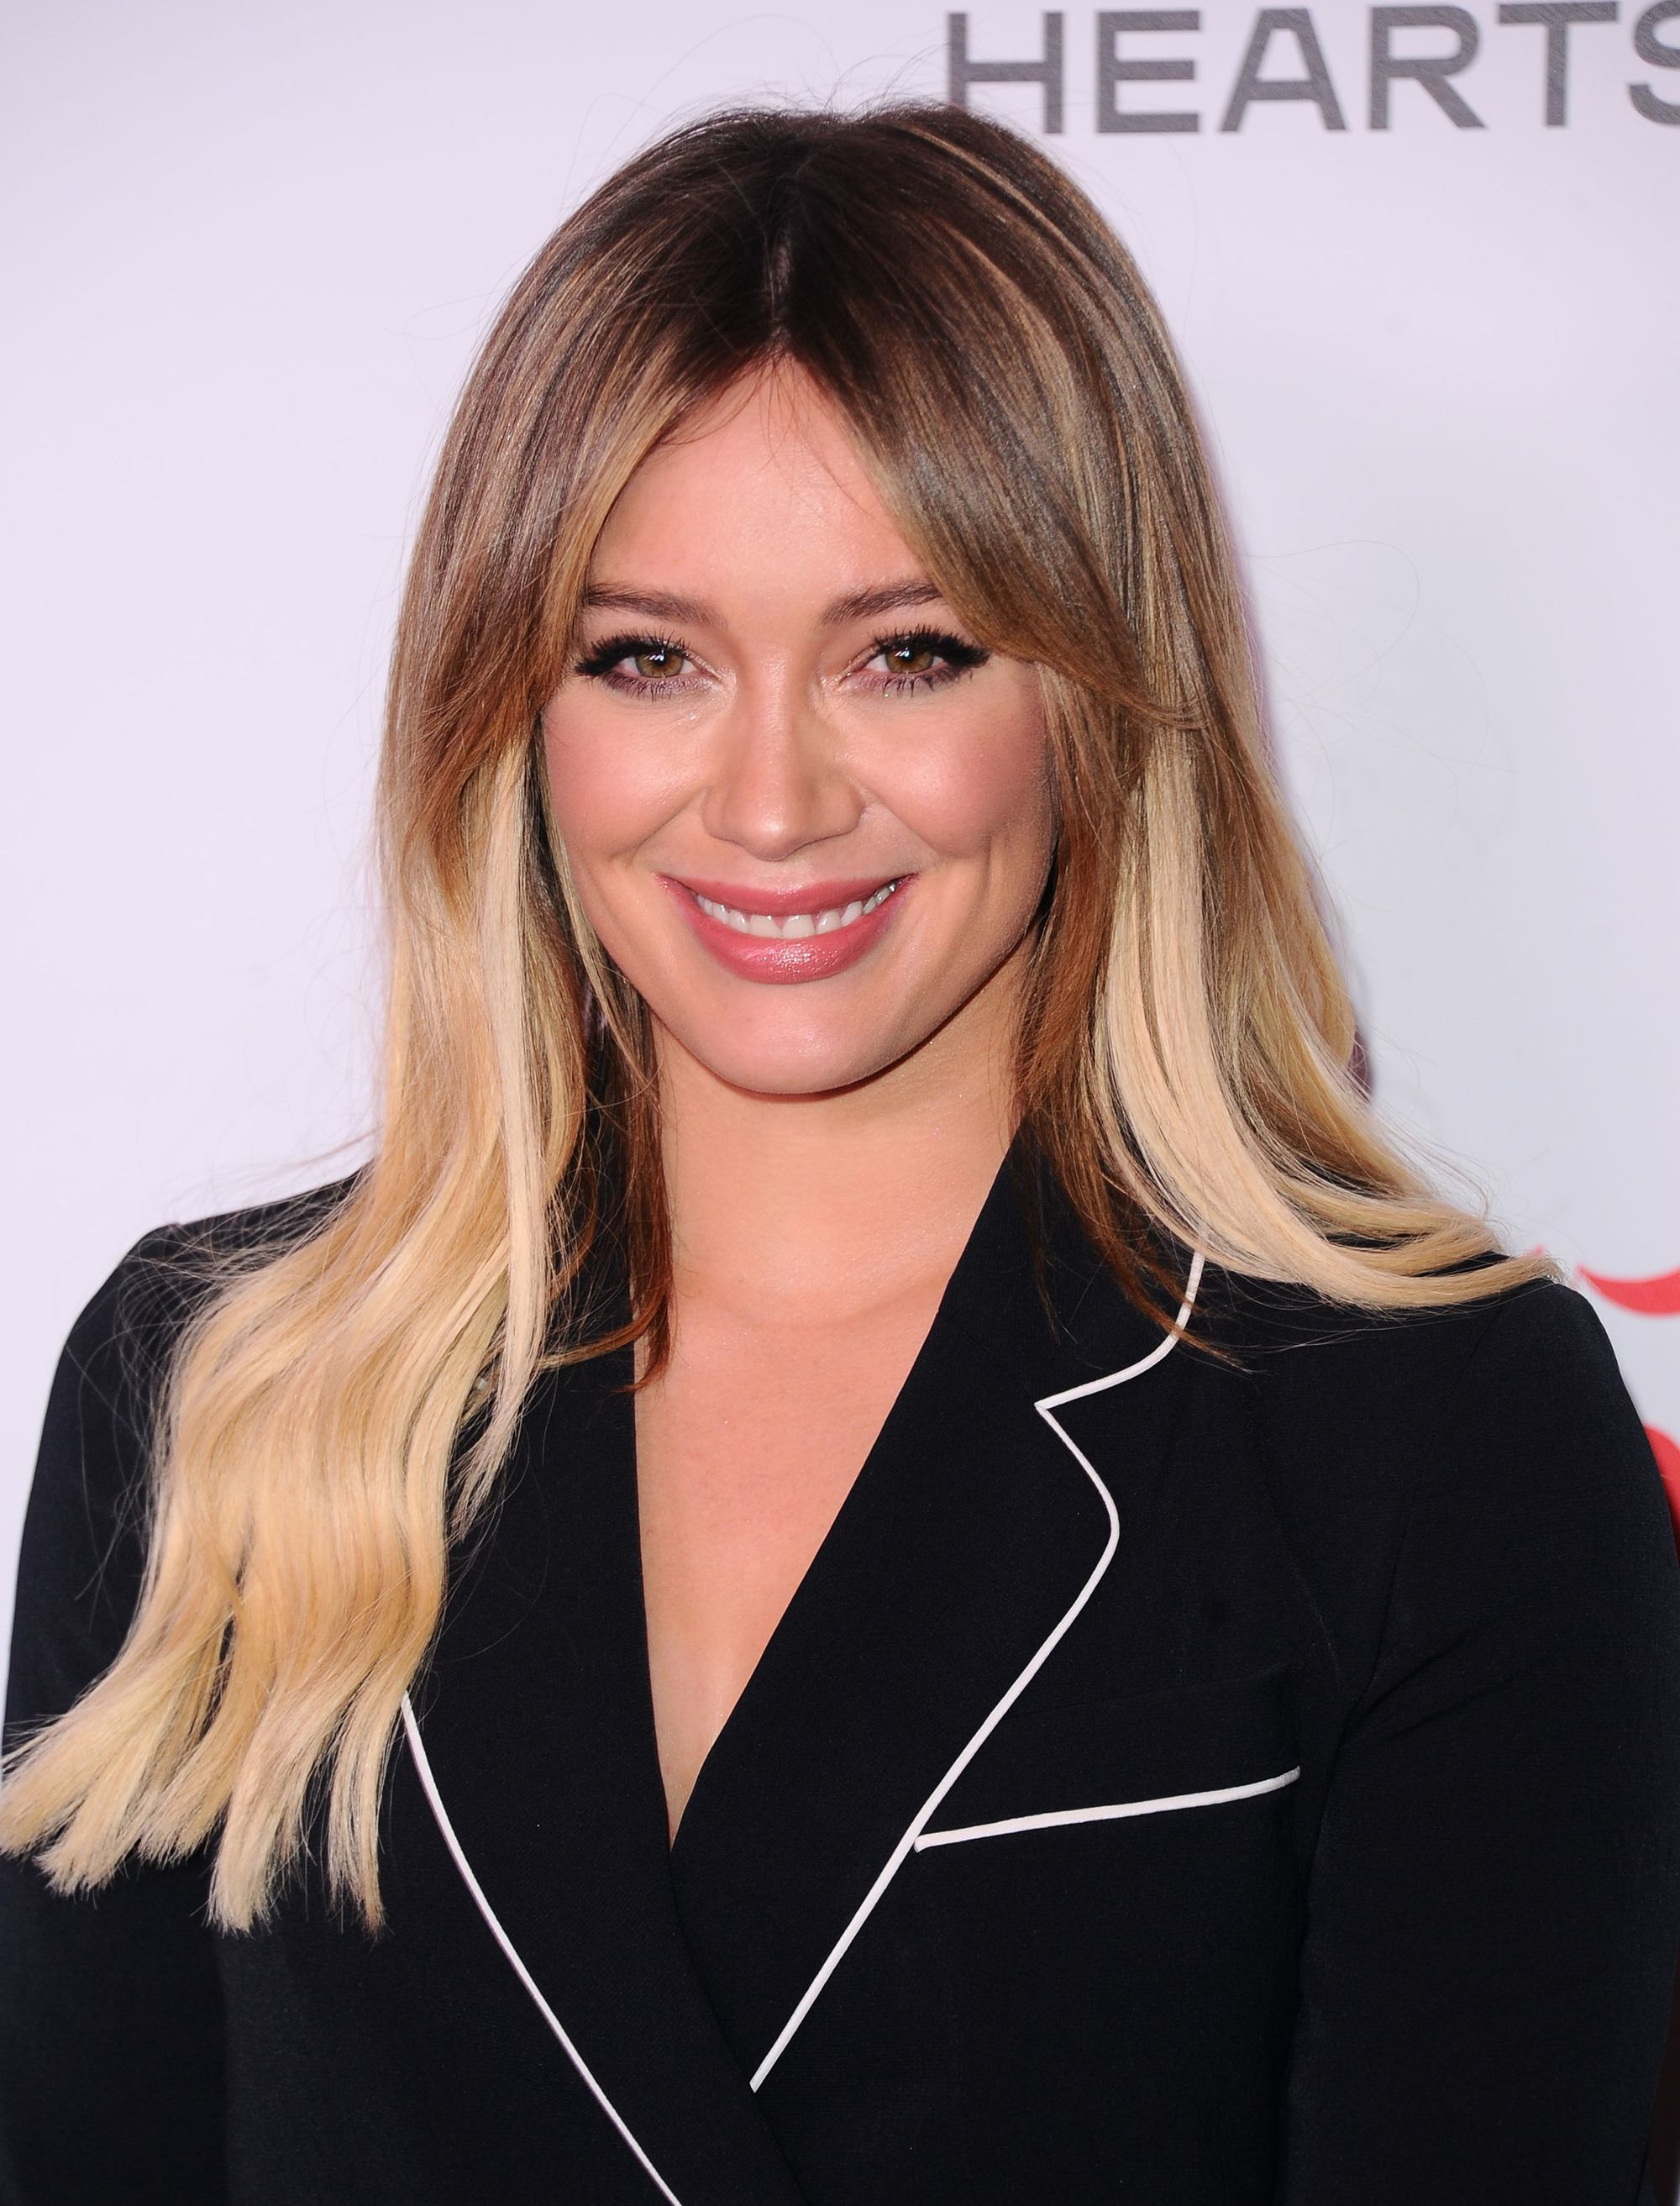 Brown hair with blonde highlights: Hilary Duff with long brunette and blonde balayage hair, wearing a black blazer